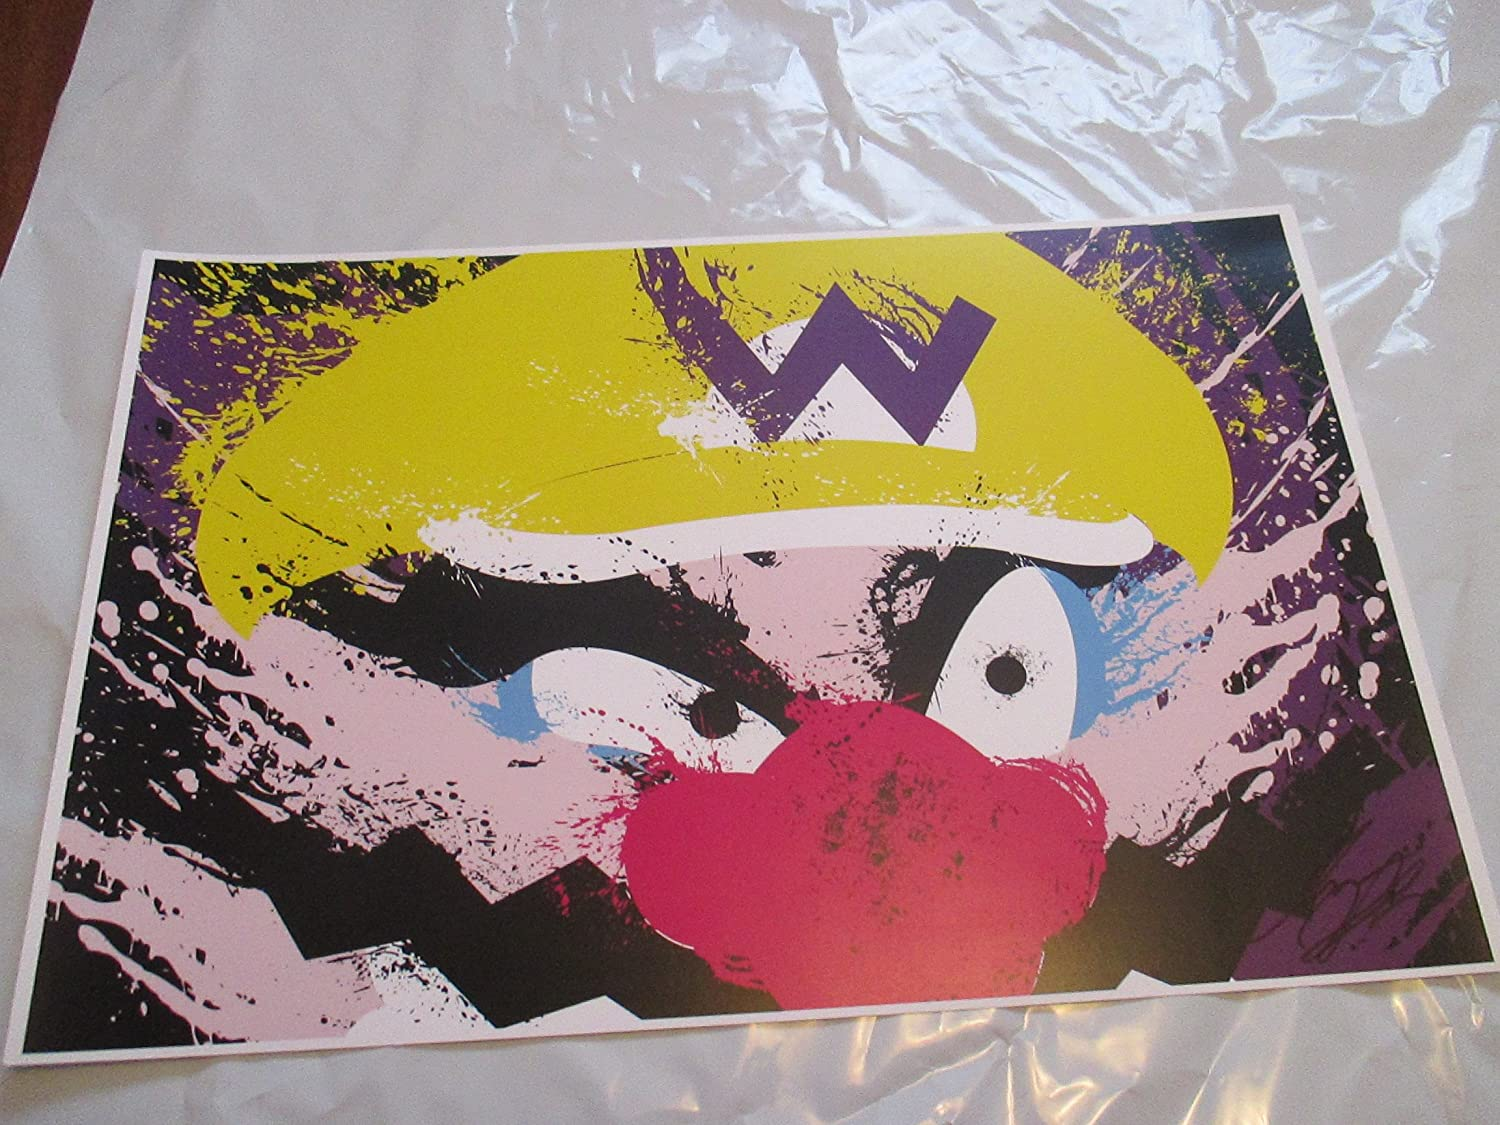 WARIO 11' By 17' Limited Edition Print Signed By Chris Huffman, W/coa WARIO 11 By 17 Limited Edition Print Signed By Chris Huffman